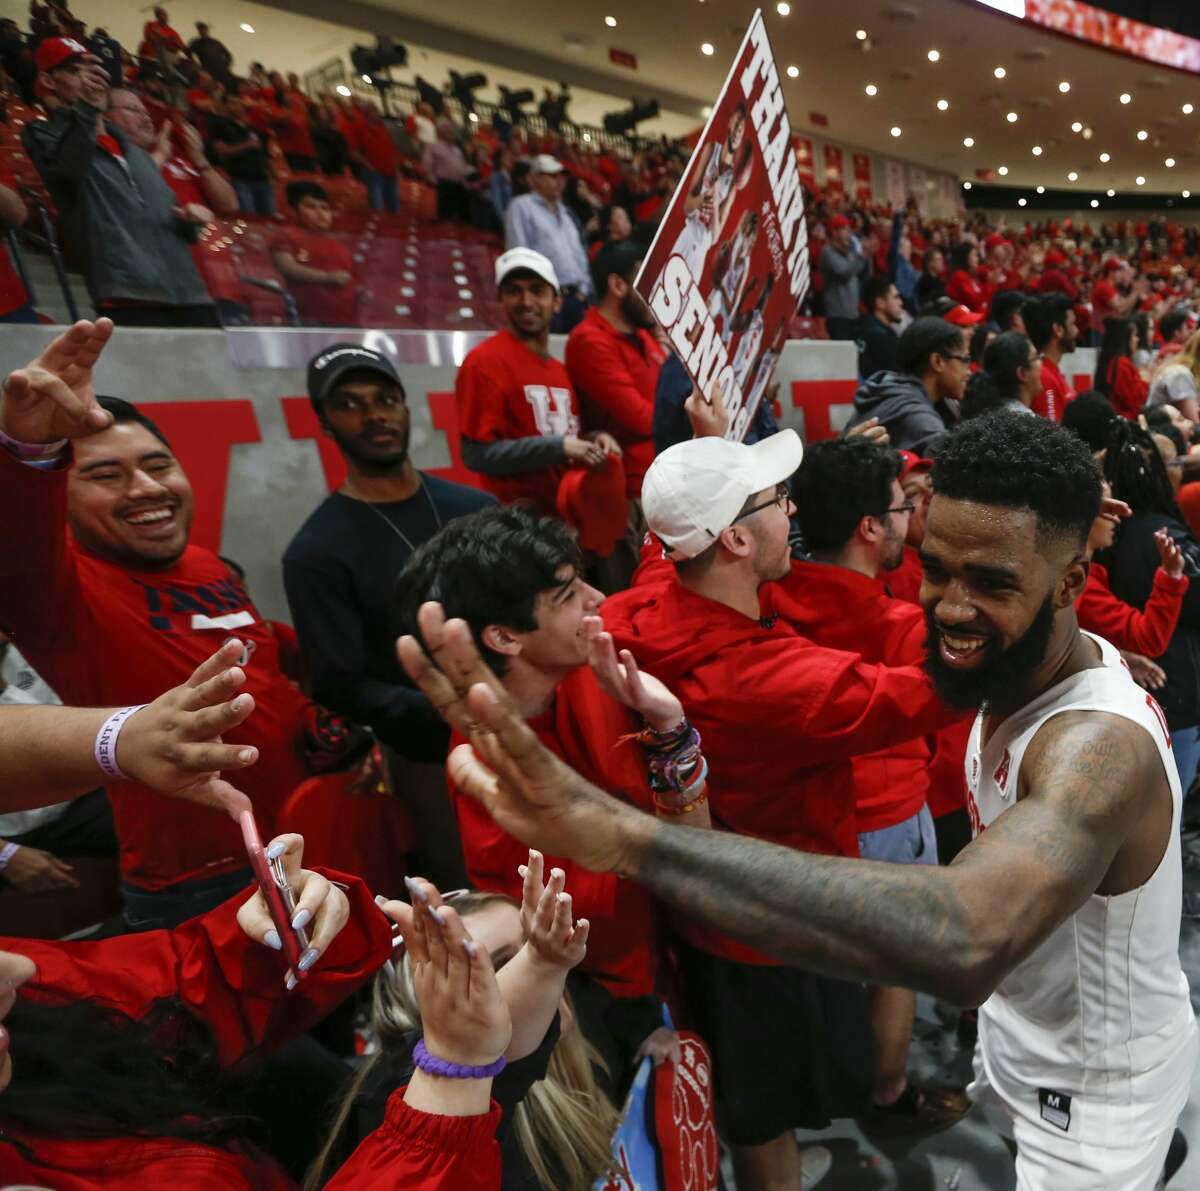 Houston guard Corey Davis Jr. (5) high fives fans as the Cougars celebrate after beating Southern Methodist 90-79 to with the AAC at Fertitta Center on Thursday, March 7, 2019, in Houston.